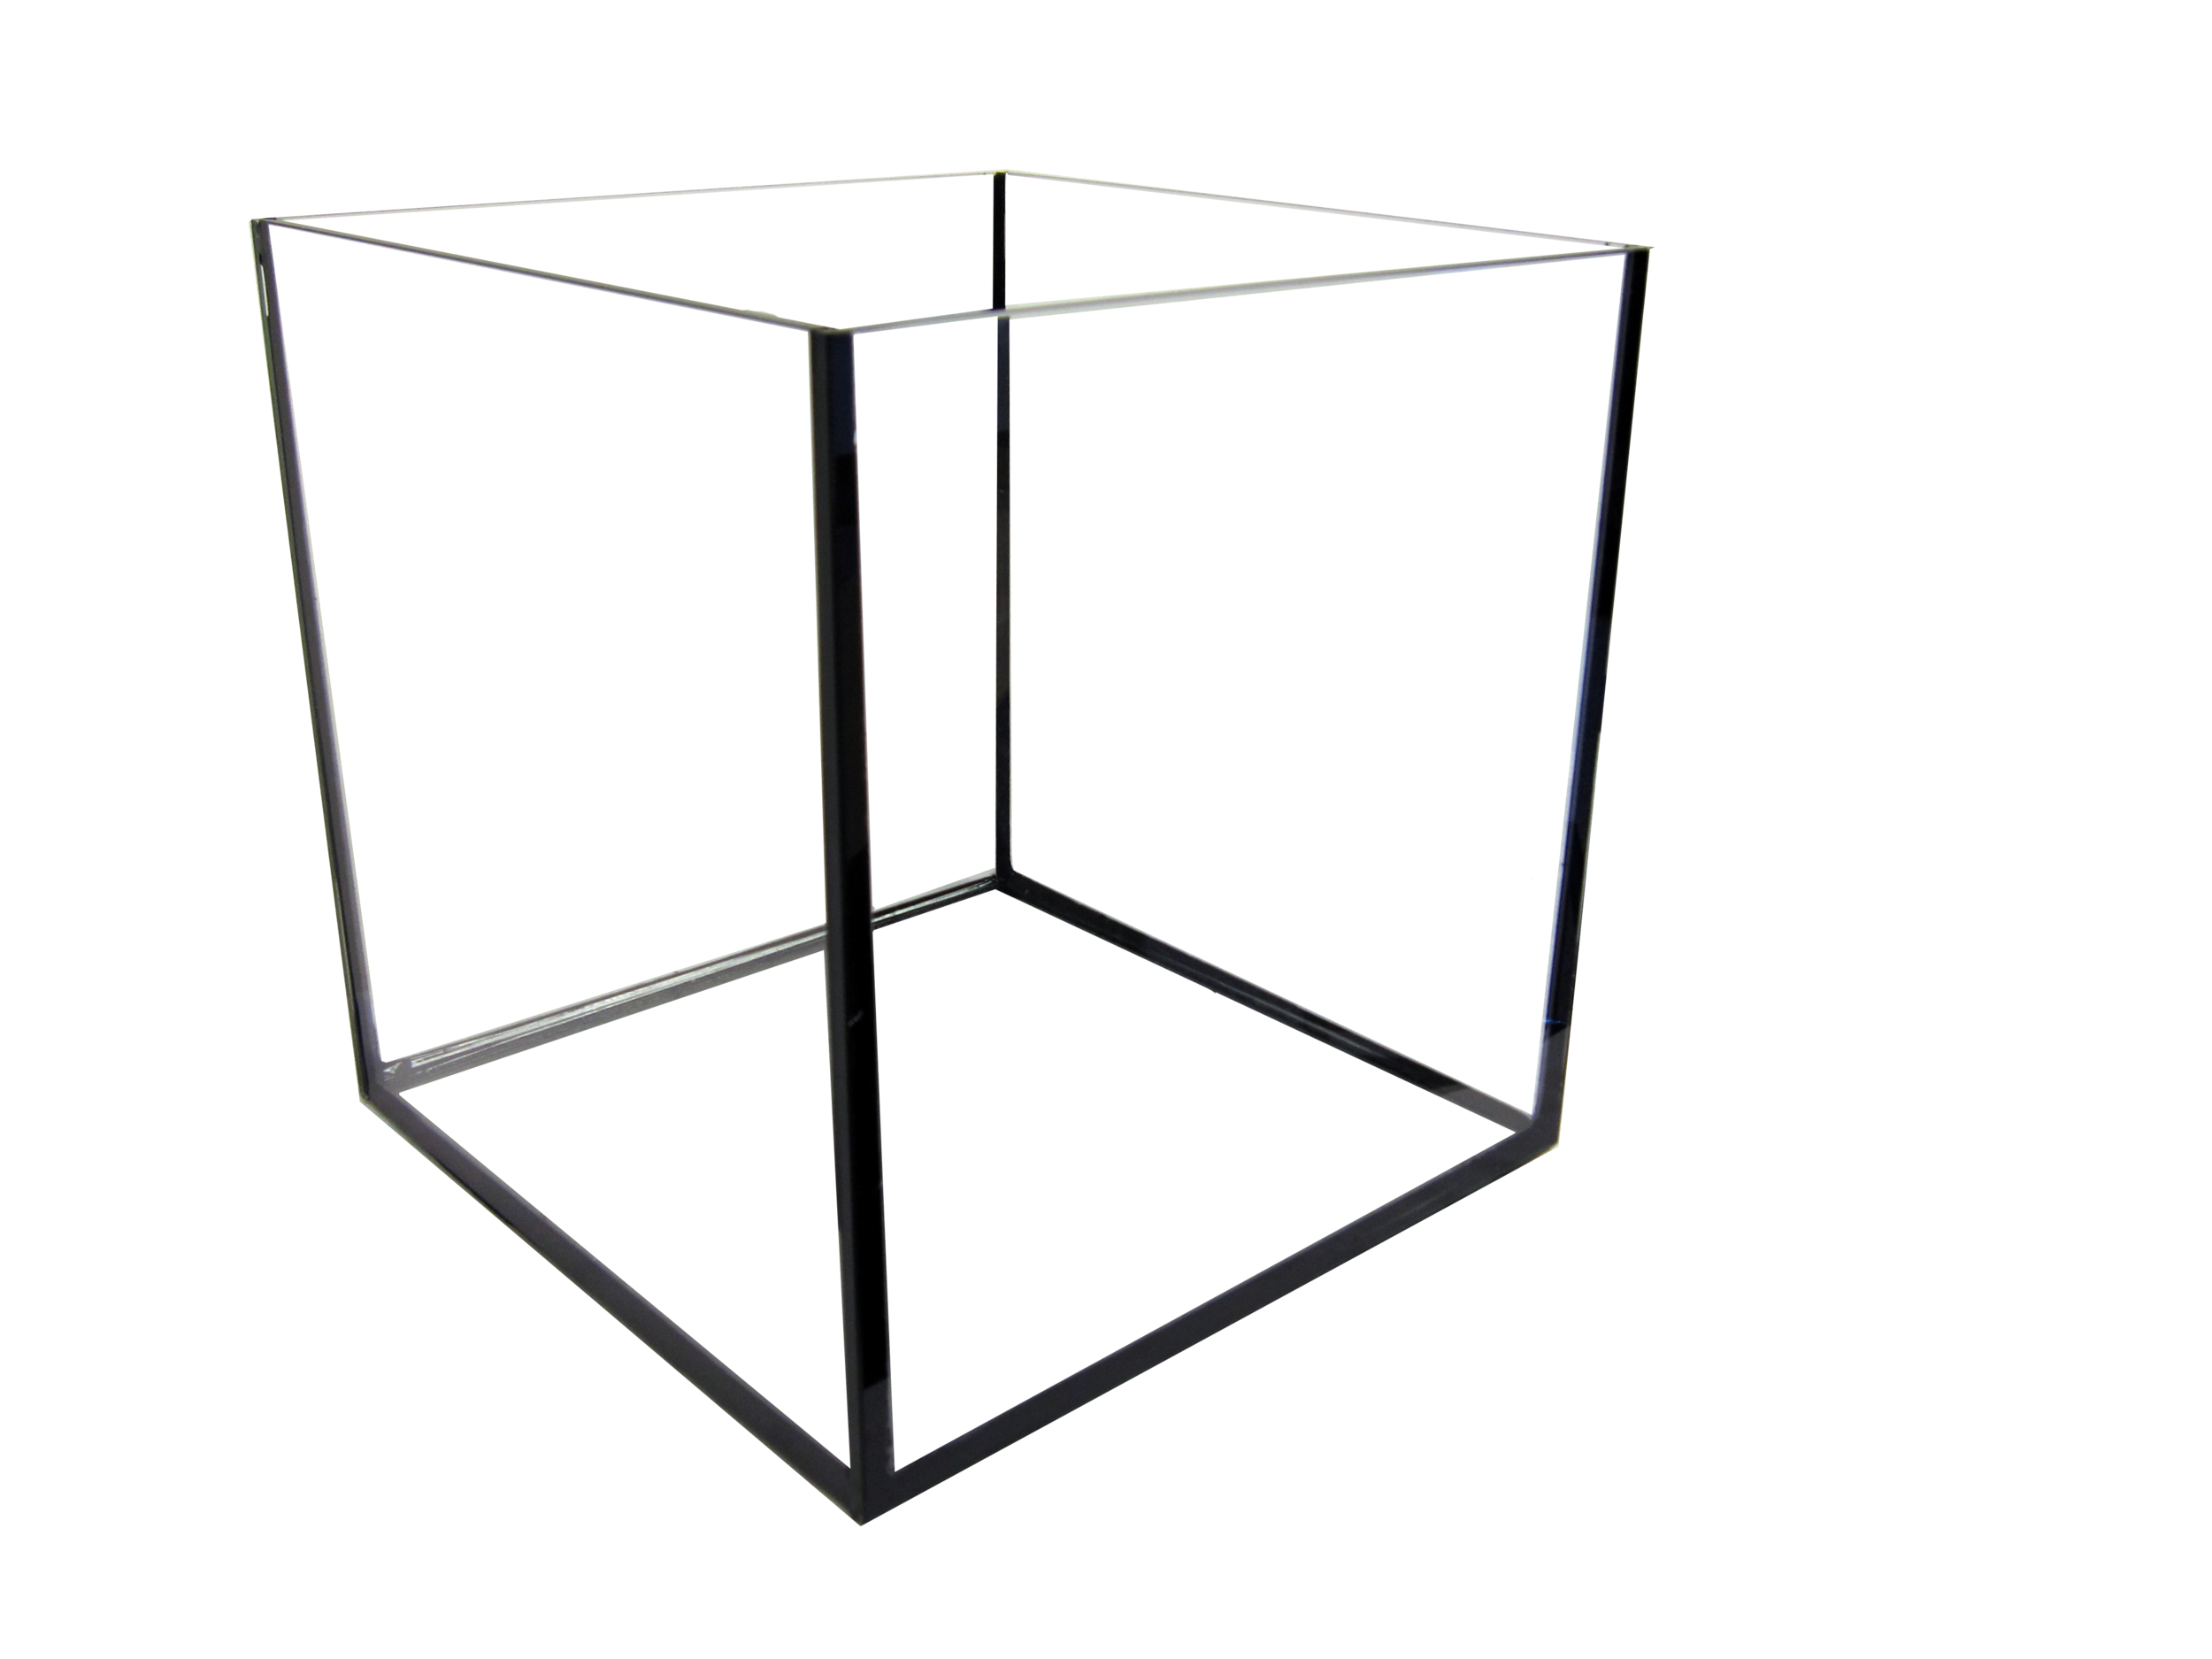 "8 Cube Rimless Aquarium  SKU#: AM11441  UPC#: 7-49729-11441-3  Product Dimension: 7.875""x7.875""x8""  Capacity: Approximately 2.2 gallons  Weight: 4.4 lbs"